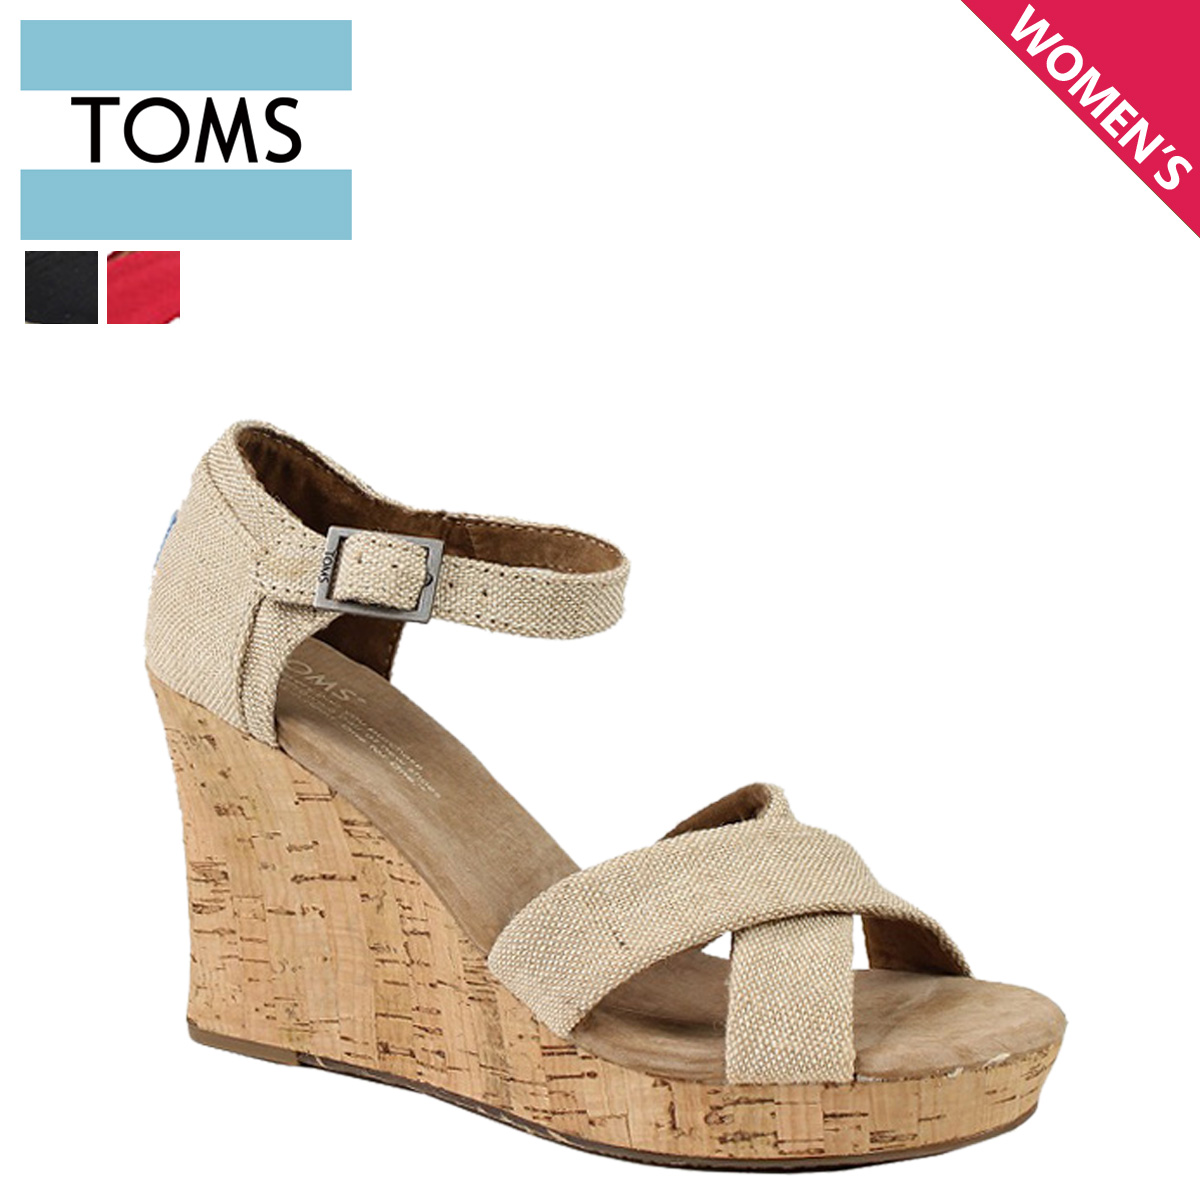 75437351927 ALLSPORTS  Thoms shoes TOMS SHOES Lady s sandals WOMEN S STRAPPY ...